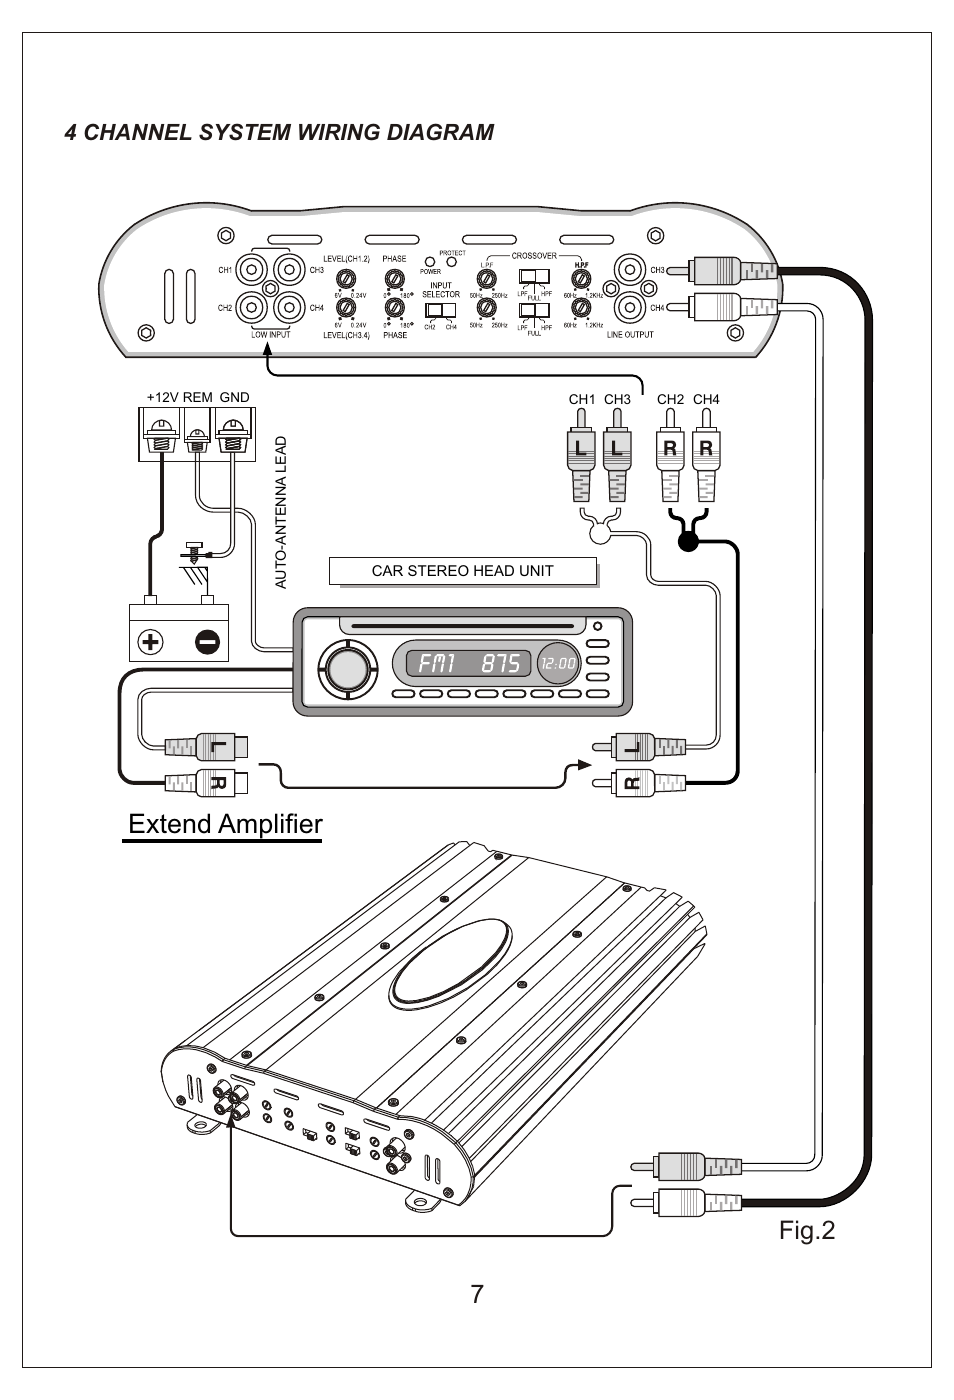 Amplifier Wiring Diagram For Ch 4 Detailed Schematics Mono Car Audio Amp Diagrams Extend 7fig 2 Channel System Bassworx Subwoofer And Installation